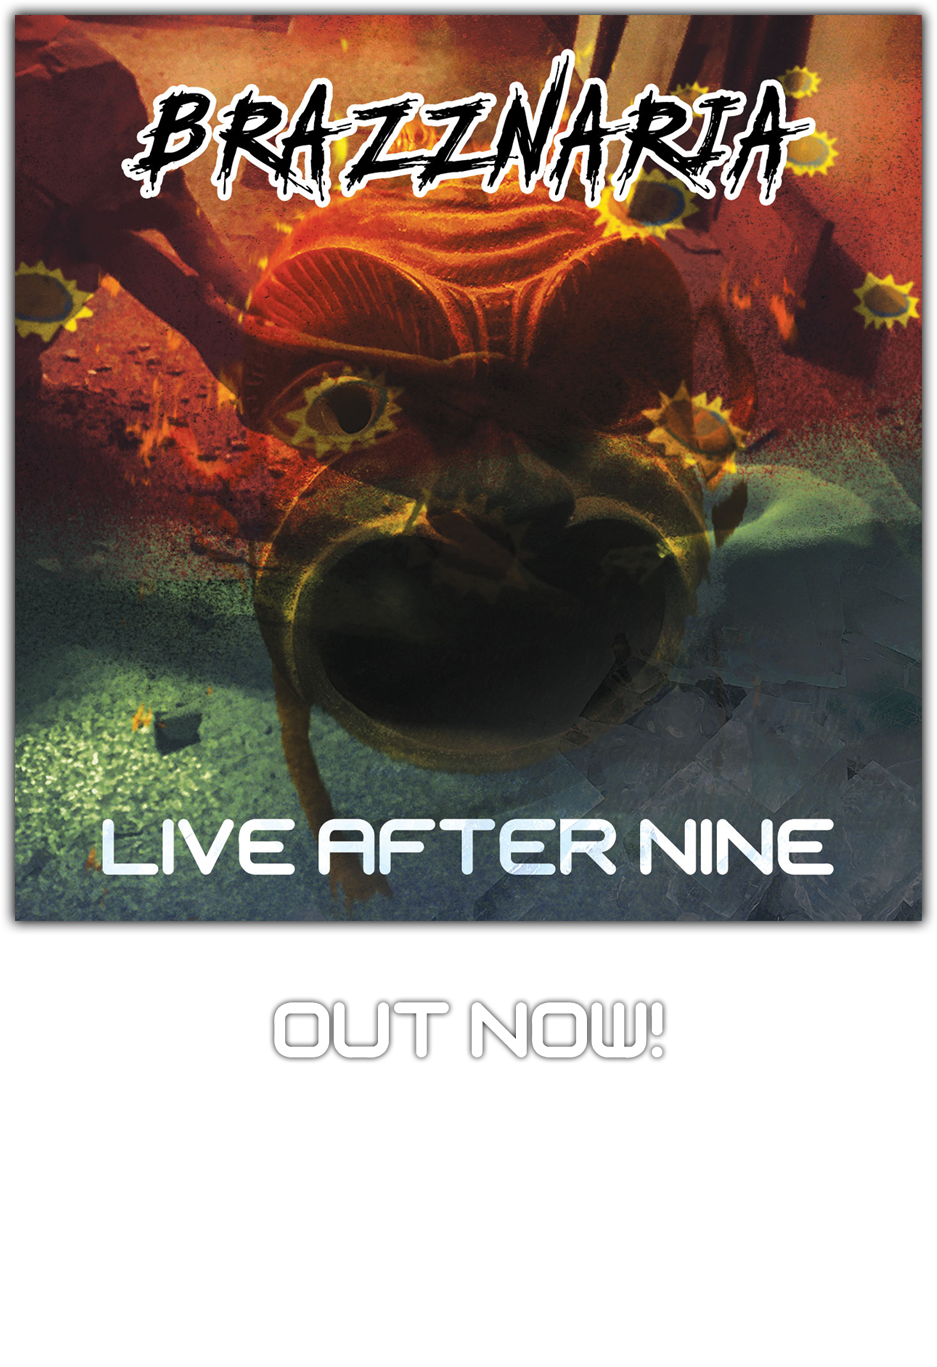 Live After Nine album by Brazznaria